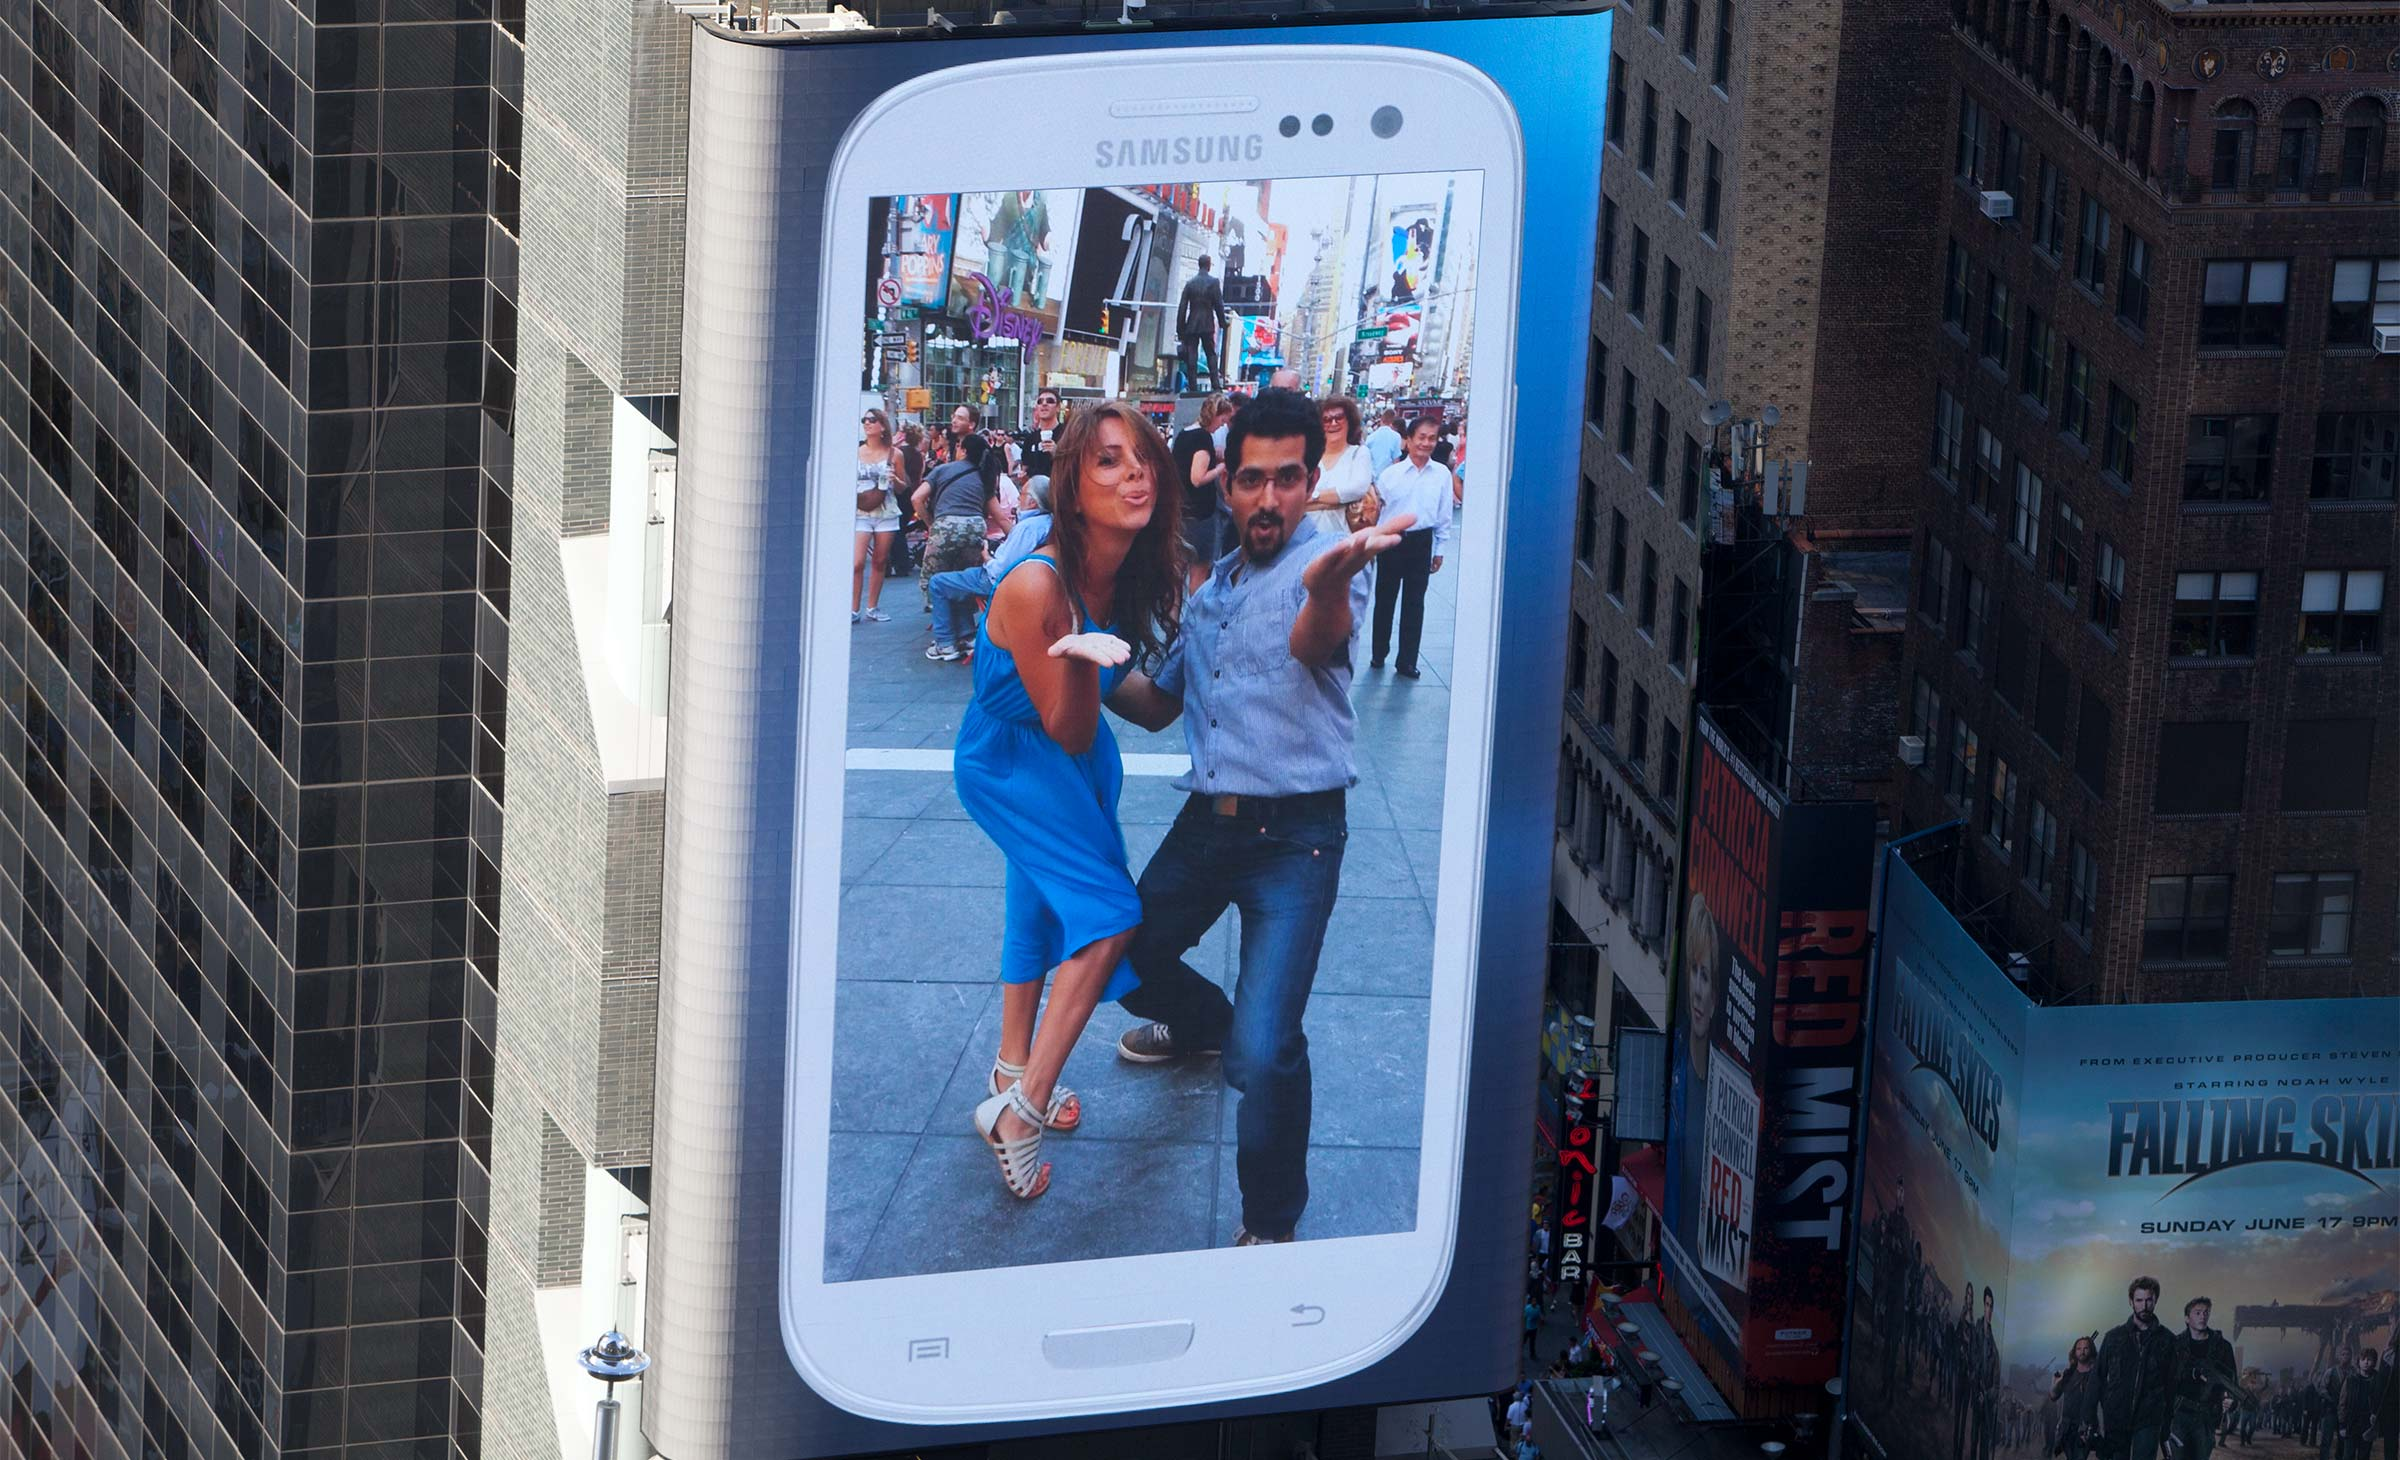 Samsung Galaxy SIII Times Square Activation